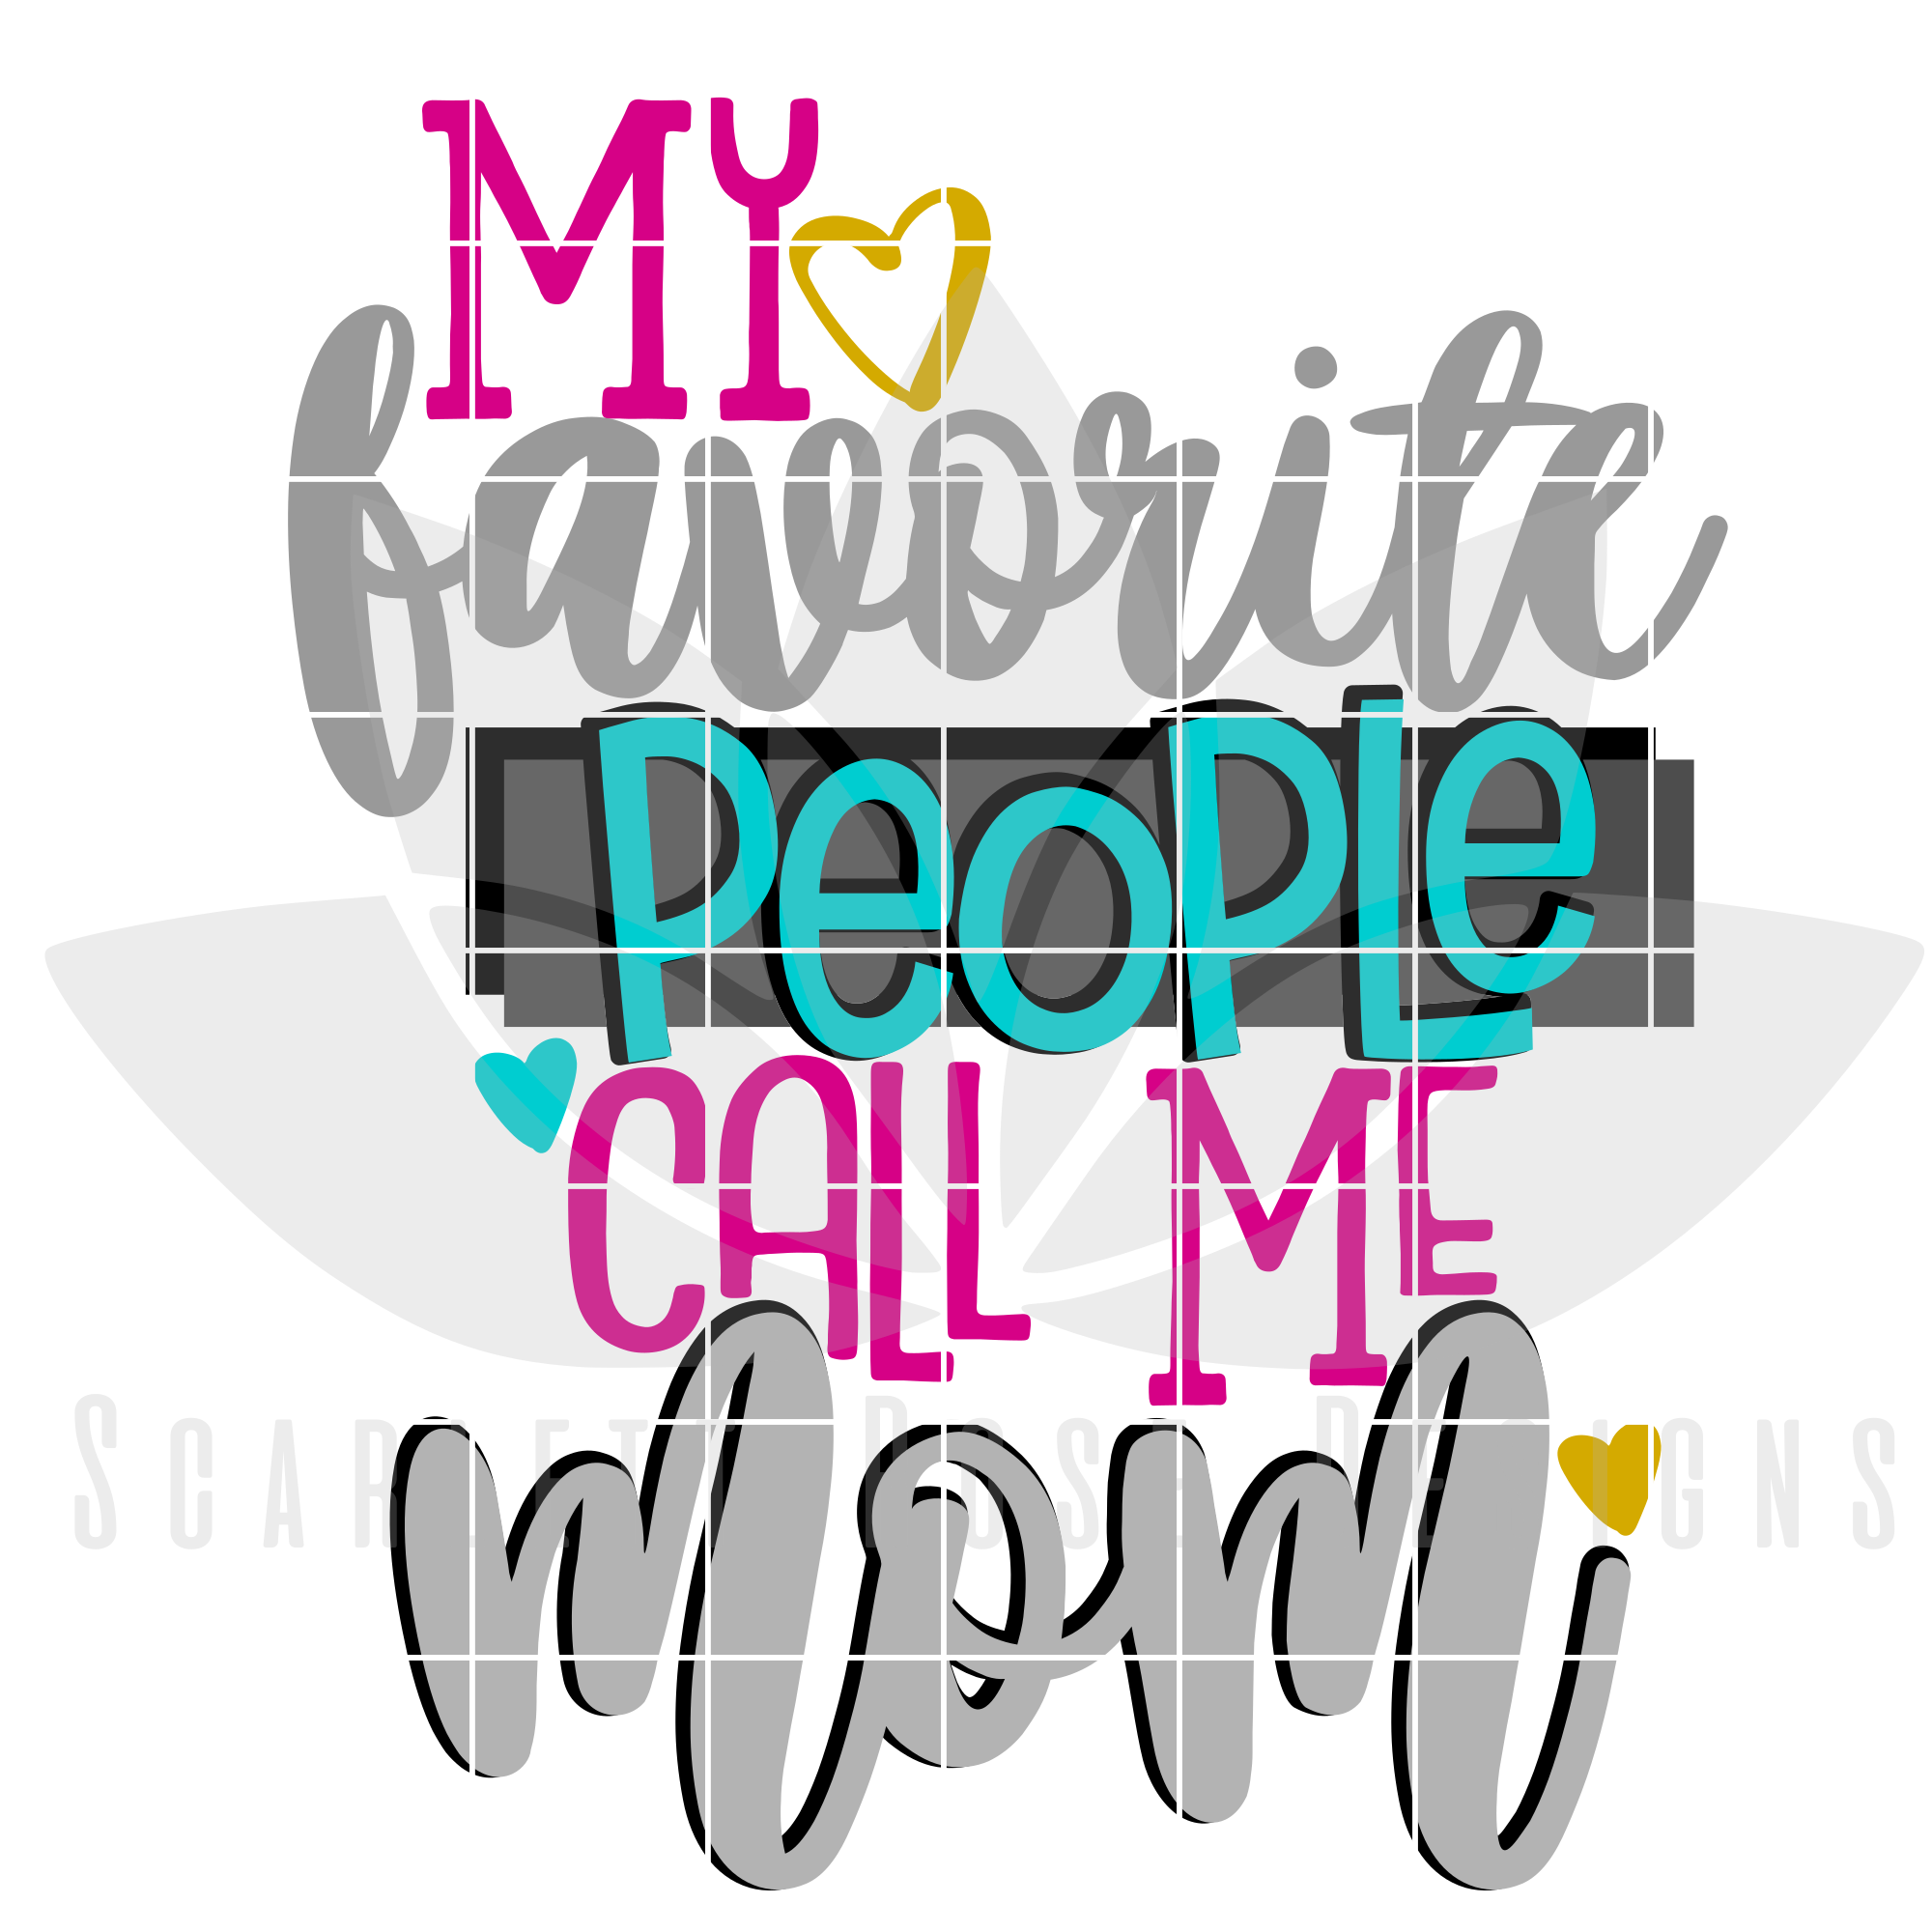 My Favorite People Call Me Mom svg; Mom svg; Mom Gift svg; Proud Mom svg; New Mom svg; Family; Cut File for Cricut /& Silhouette